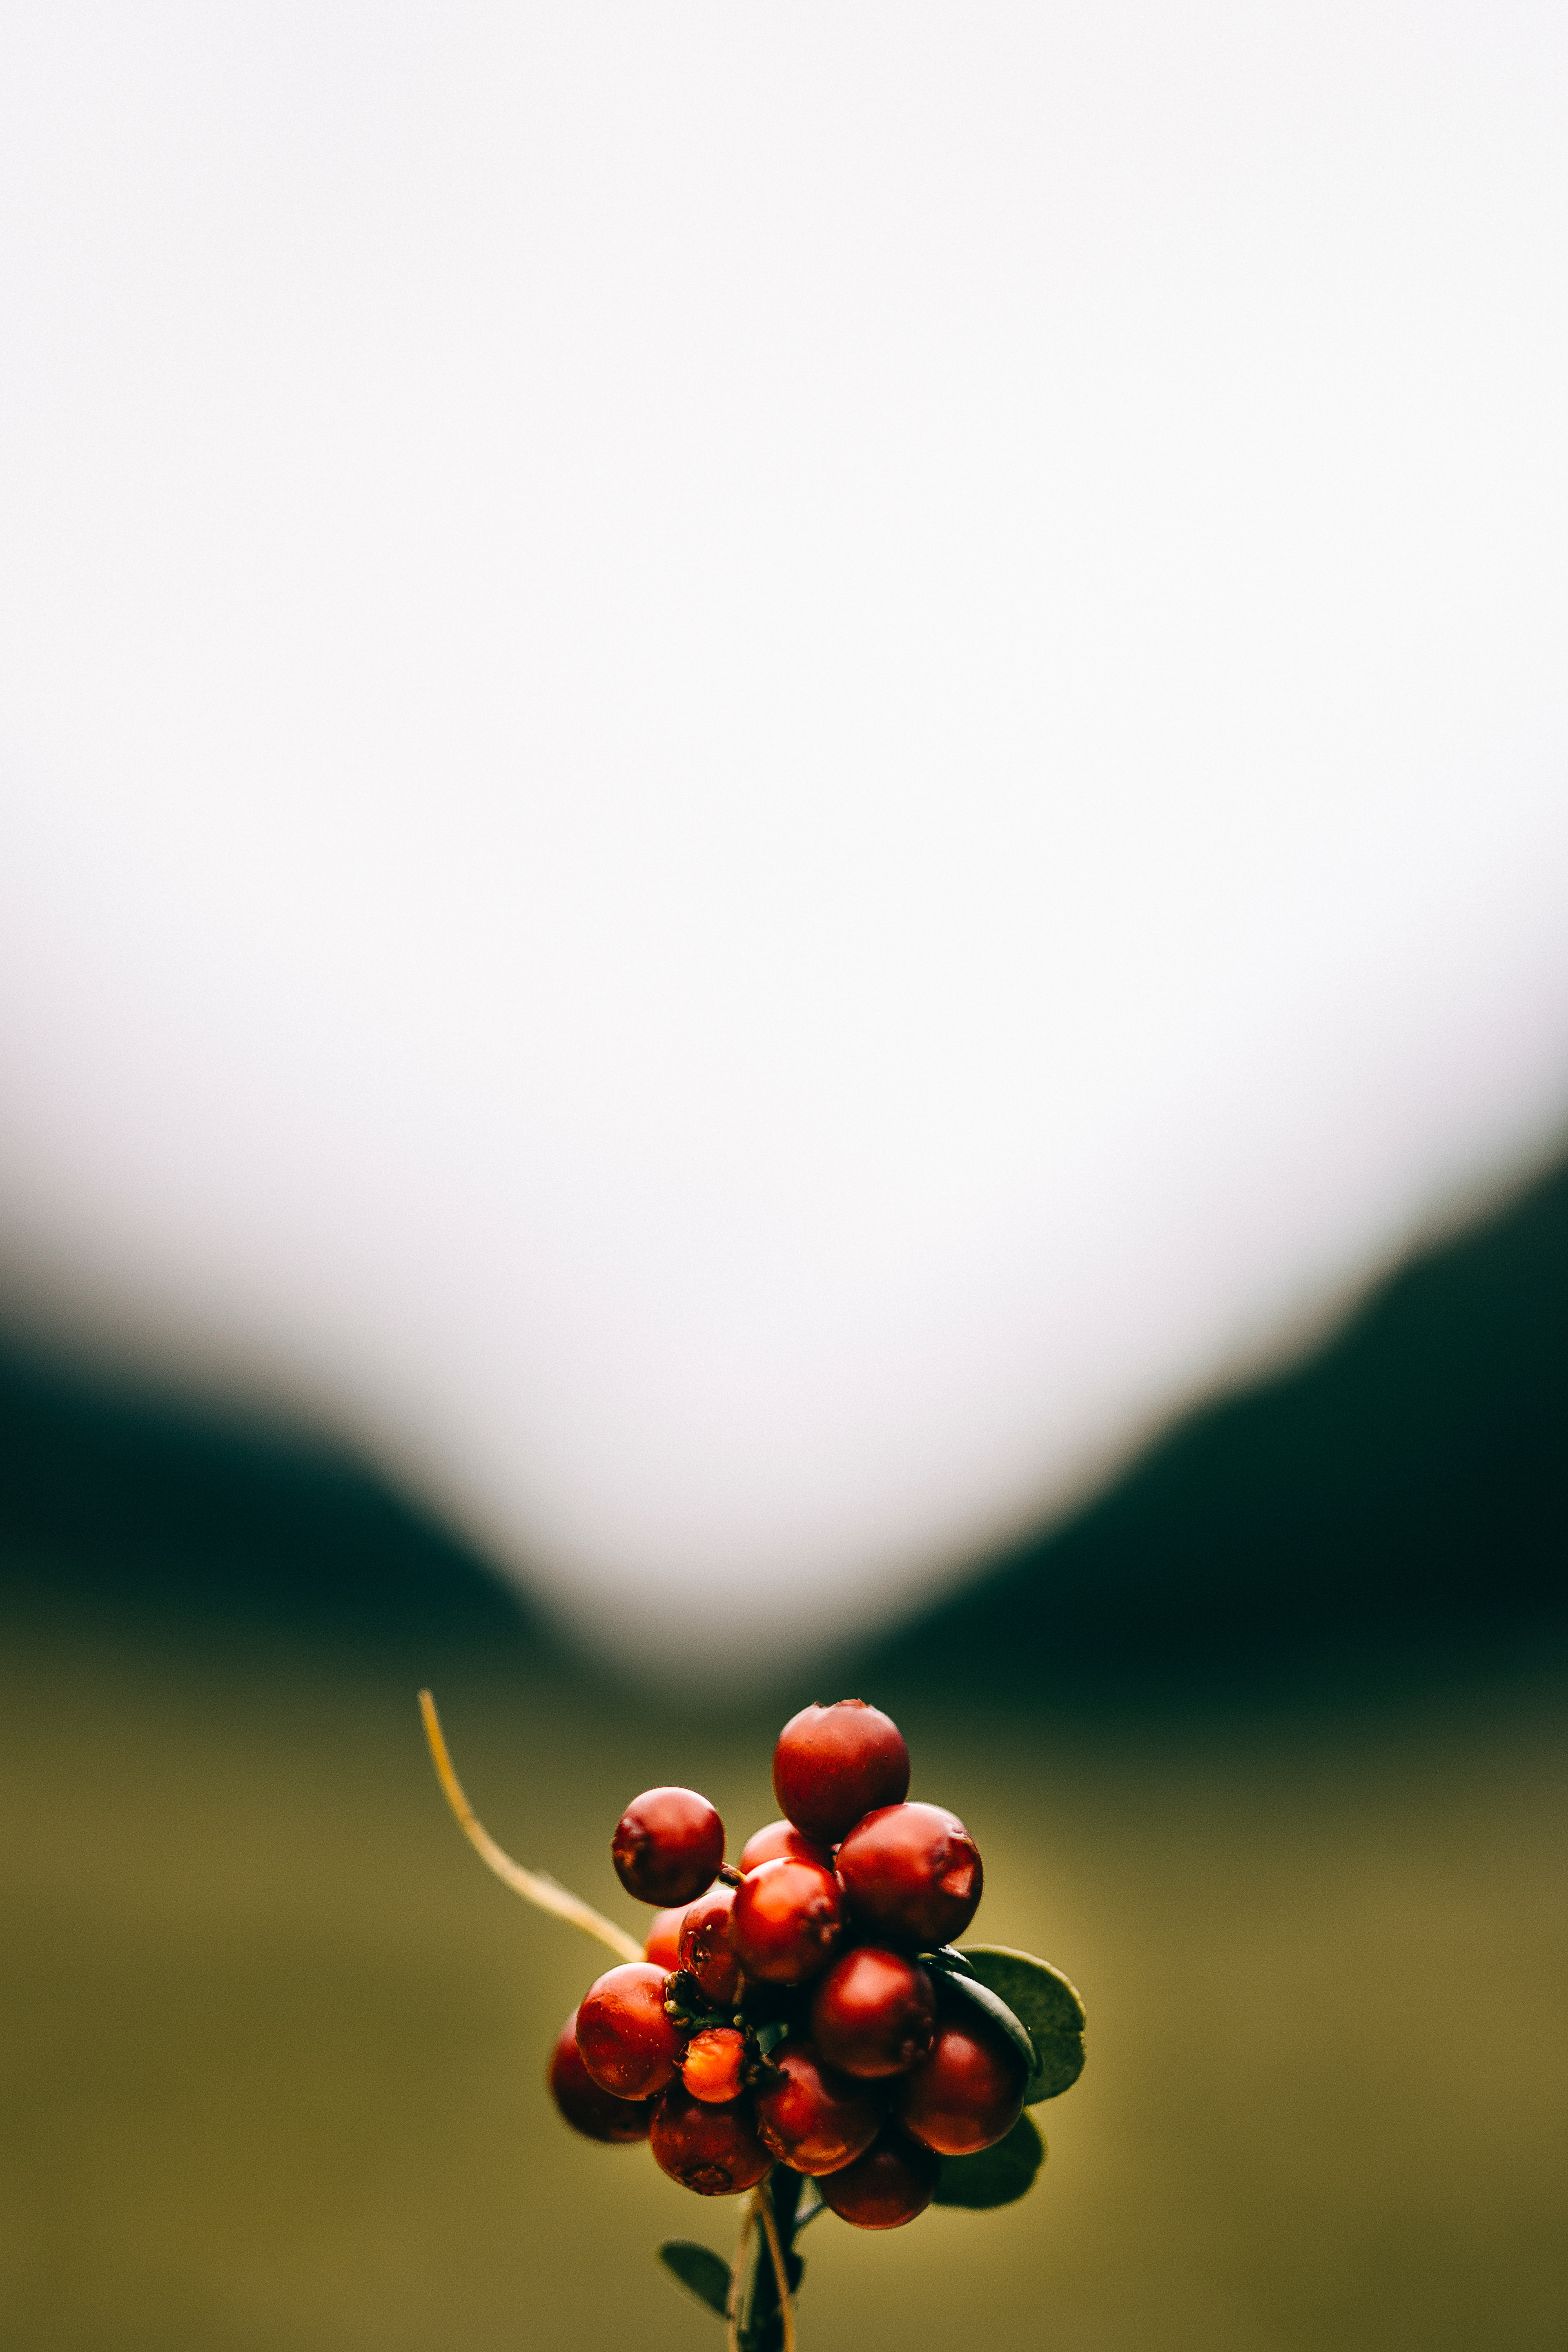 139482 download wallpaper Macro, Cranberry, Bunch, Berries screensavers and pictures for free